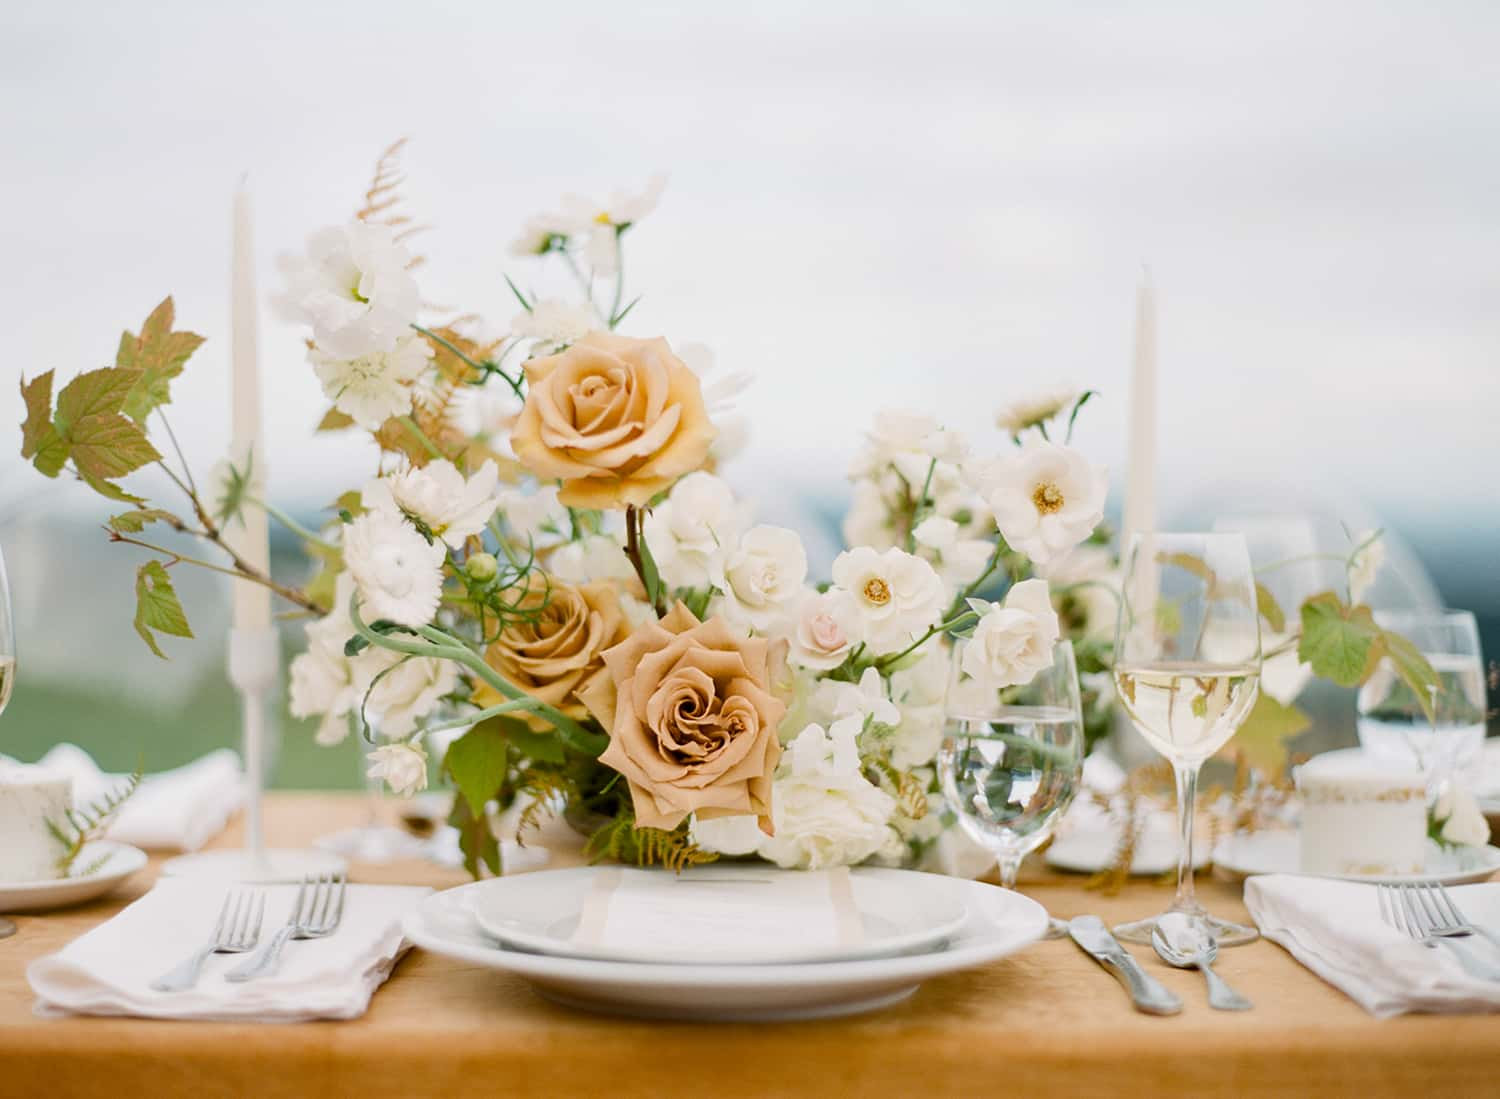 portland-wedding-florist-flowers-centerpieces.jpg